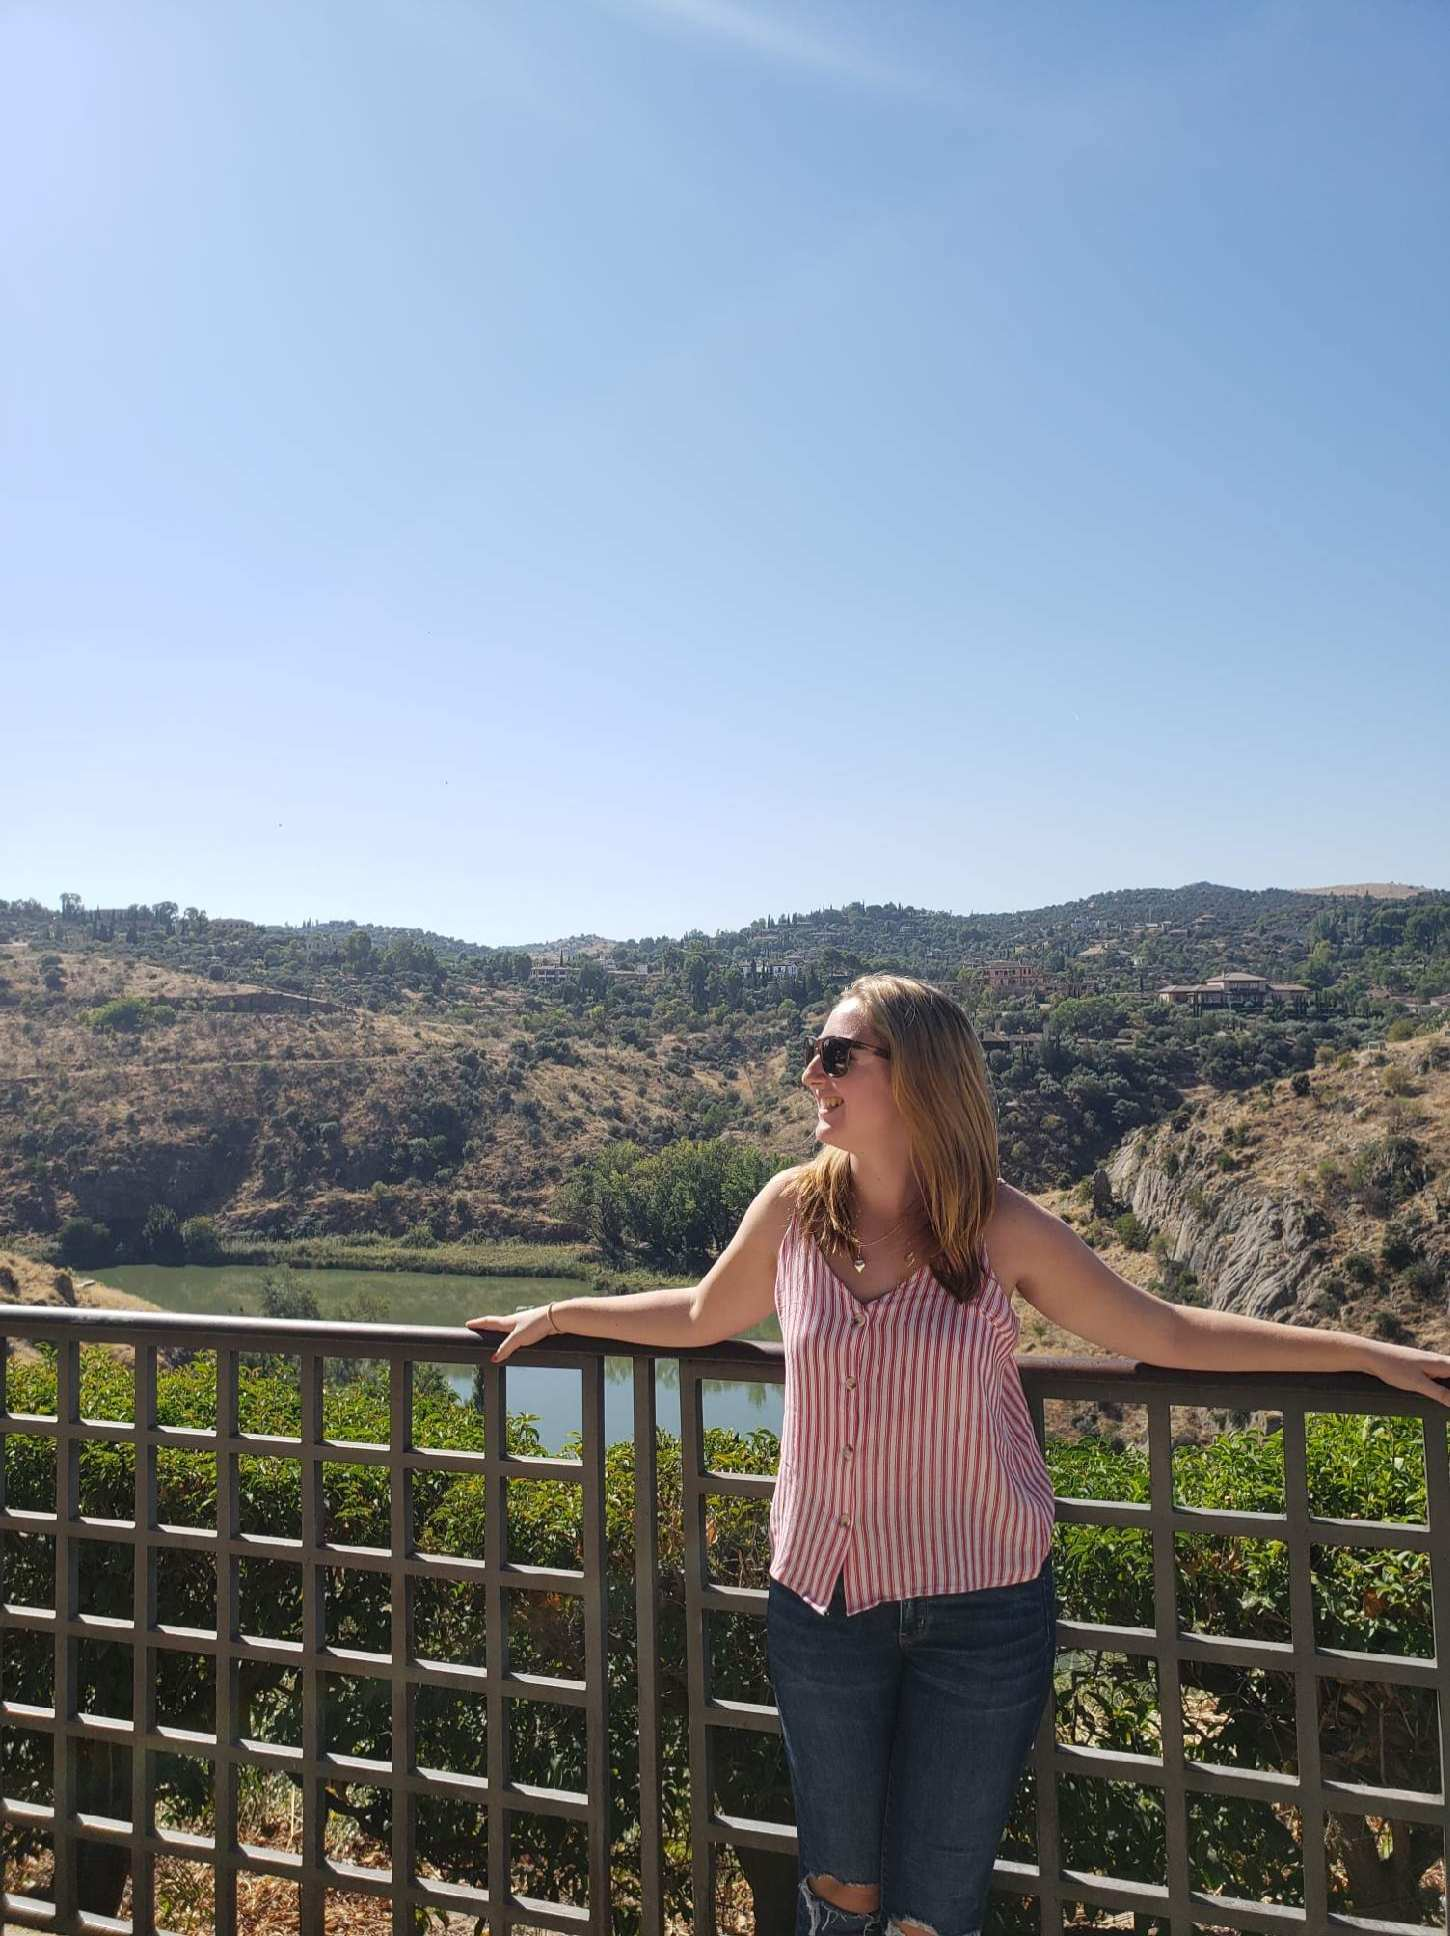 Caitie Glance studied abroad in Madrid, Spain during the fall semester of 2018 (Photo courtesy of Caitie Glance).